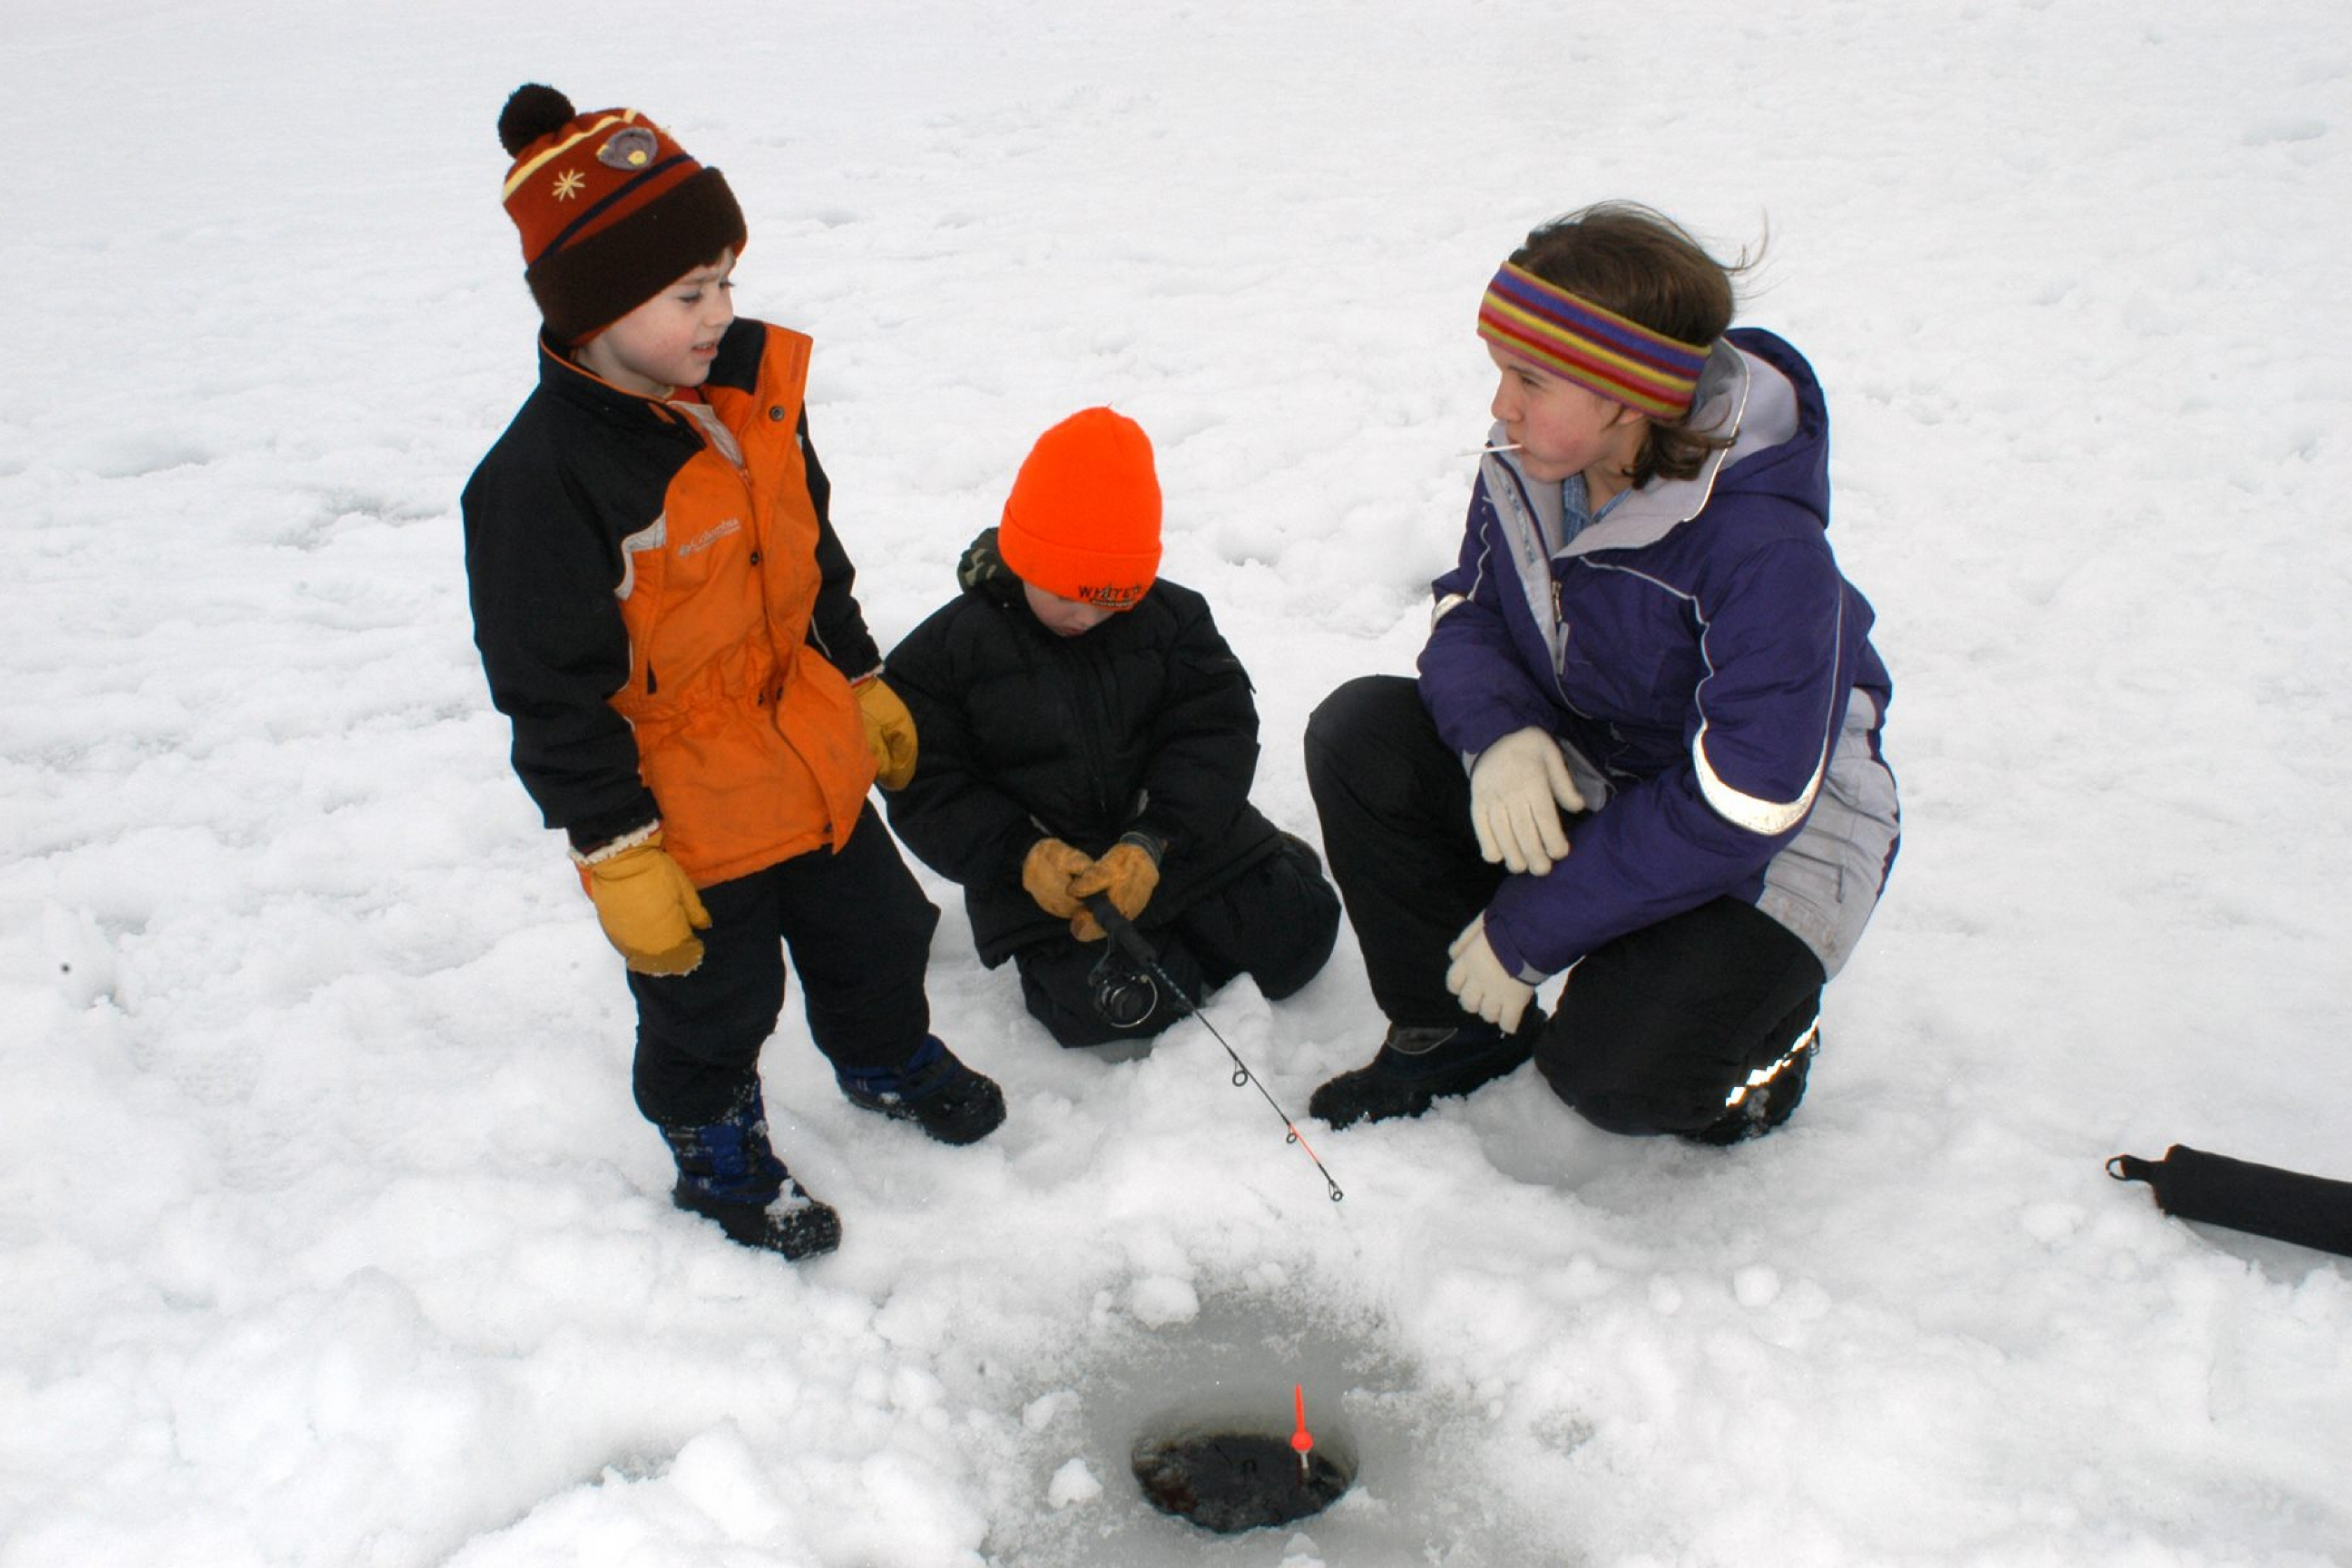 3 children on a snow-covered ice with a fishing rod through a small hole in the ice at Voyageurs National Park